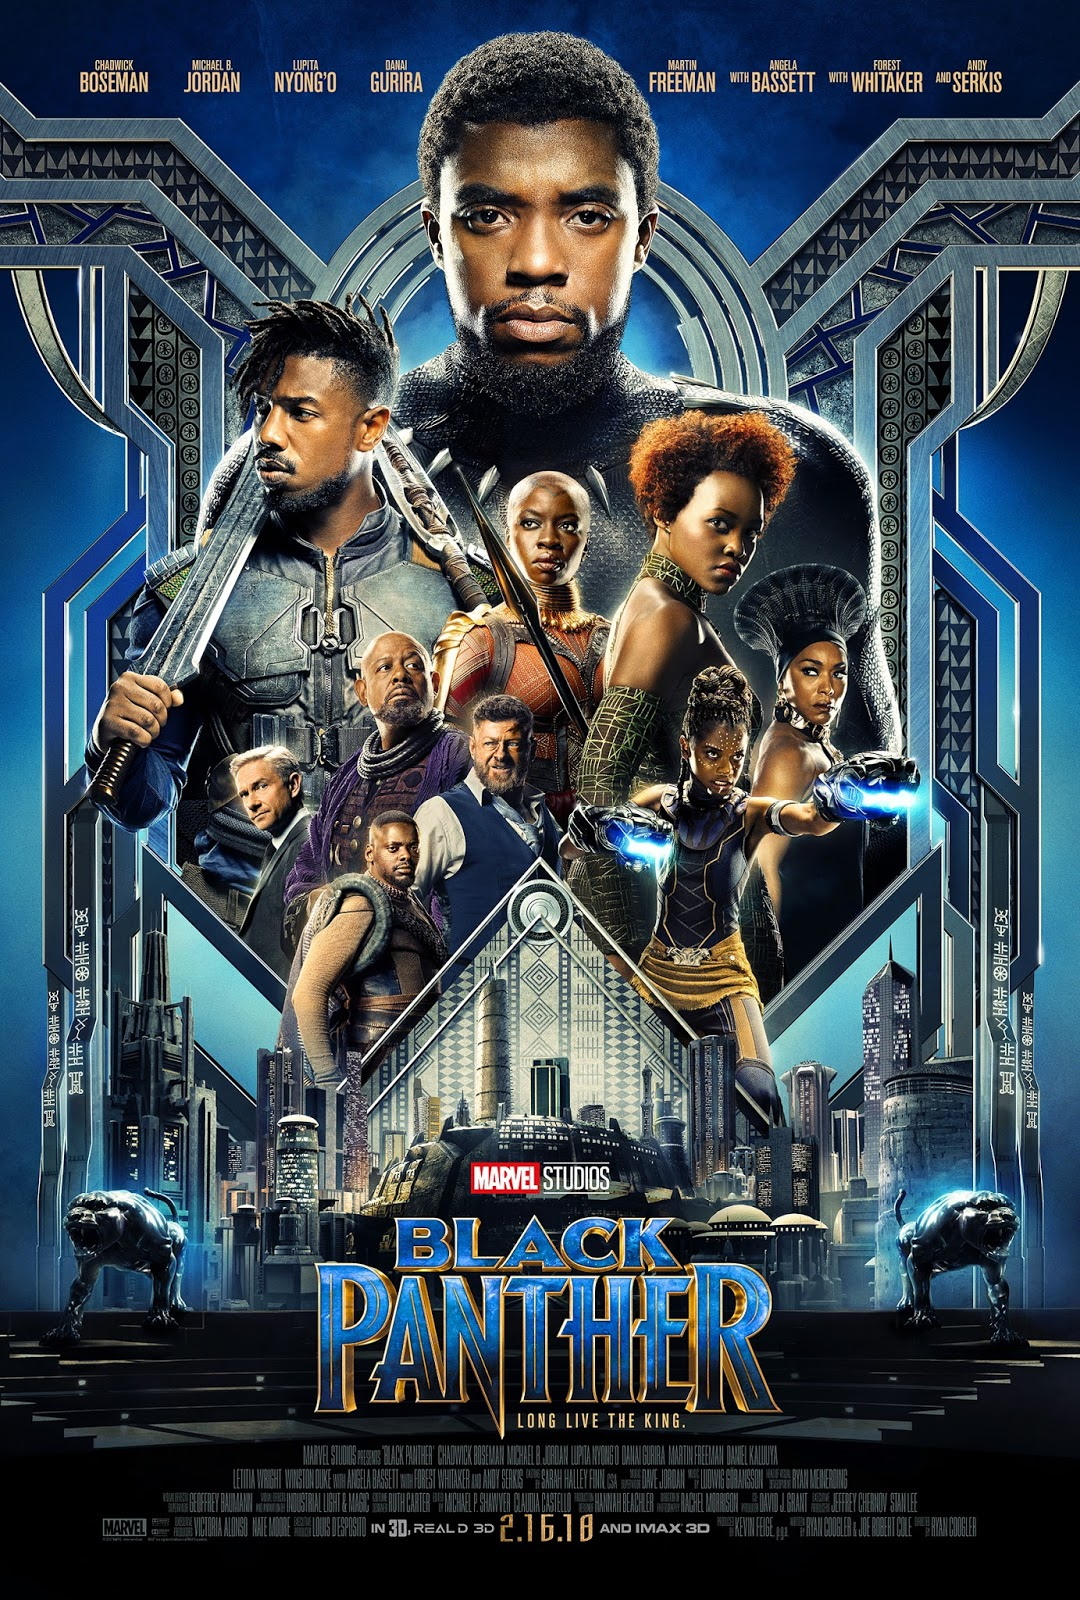 Black panther tamil dubbed movie download